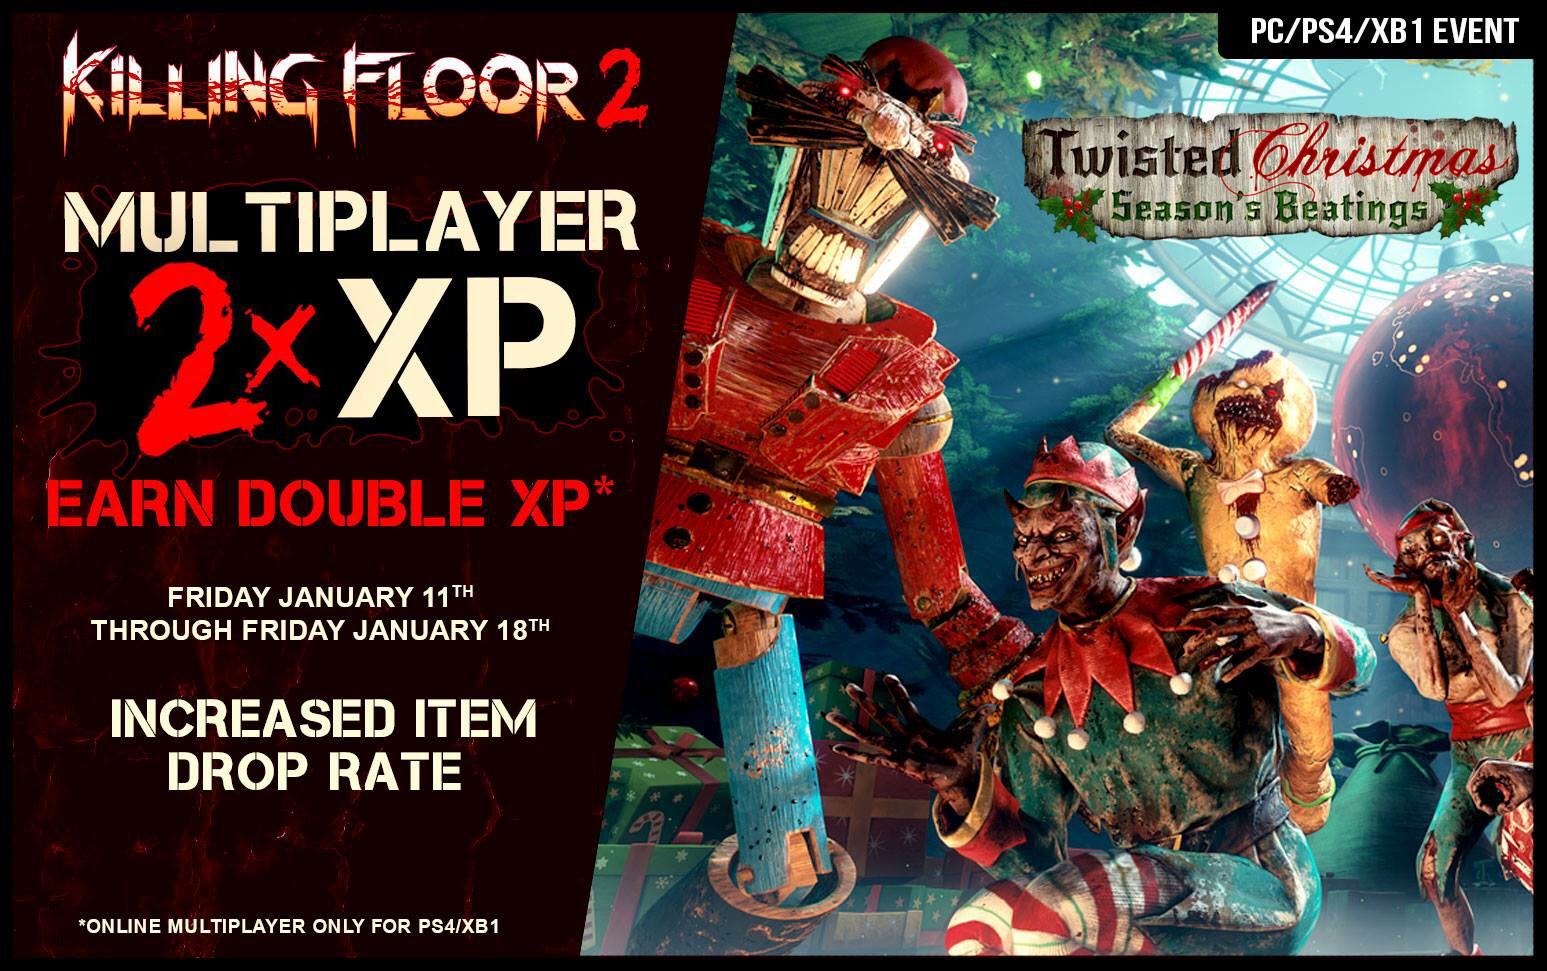 Double XP Is Back - All Week!